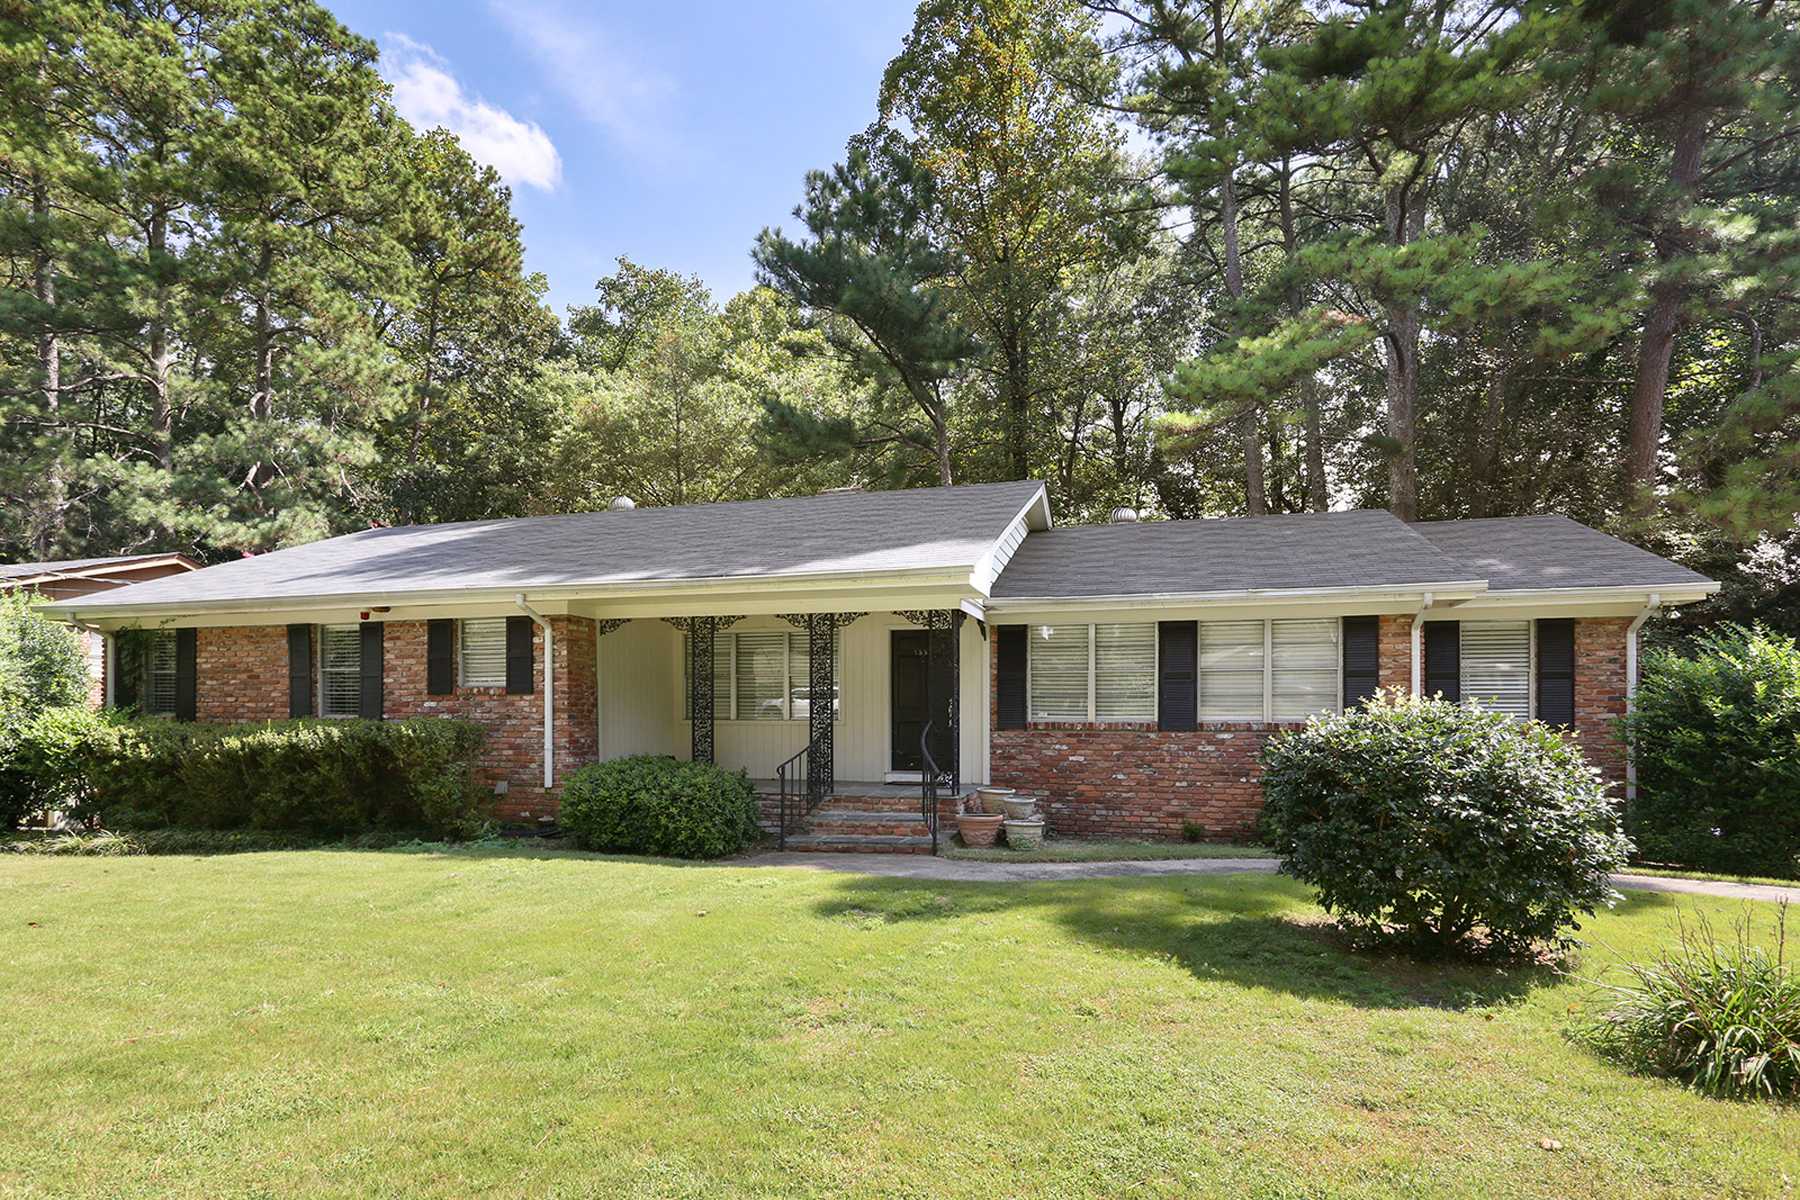 Single Family Home for Sale at New Remodel For Today's Sophisticated Homebuyer 1551 Knob Hill Drive NE Atlanta, Georgia 30329 United States